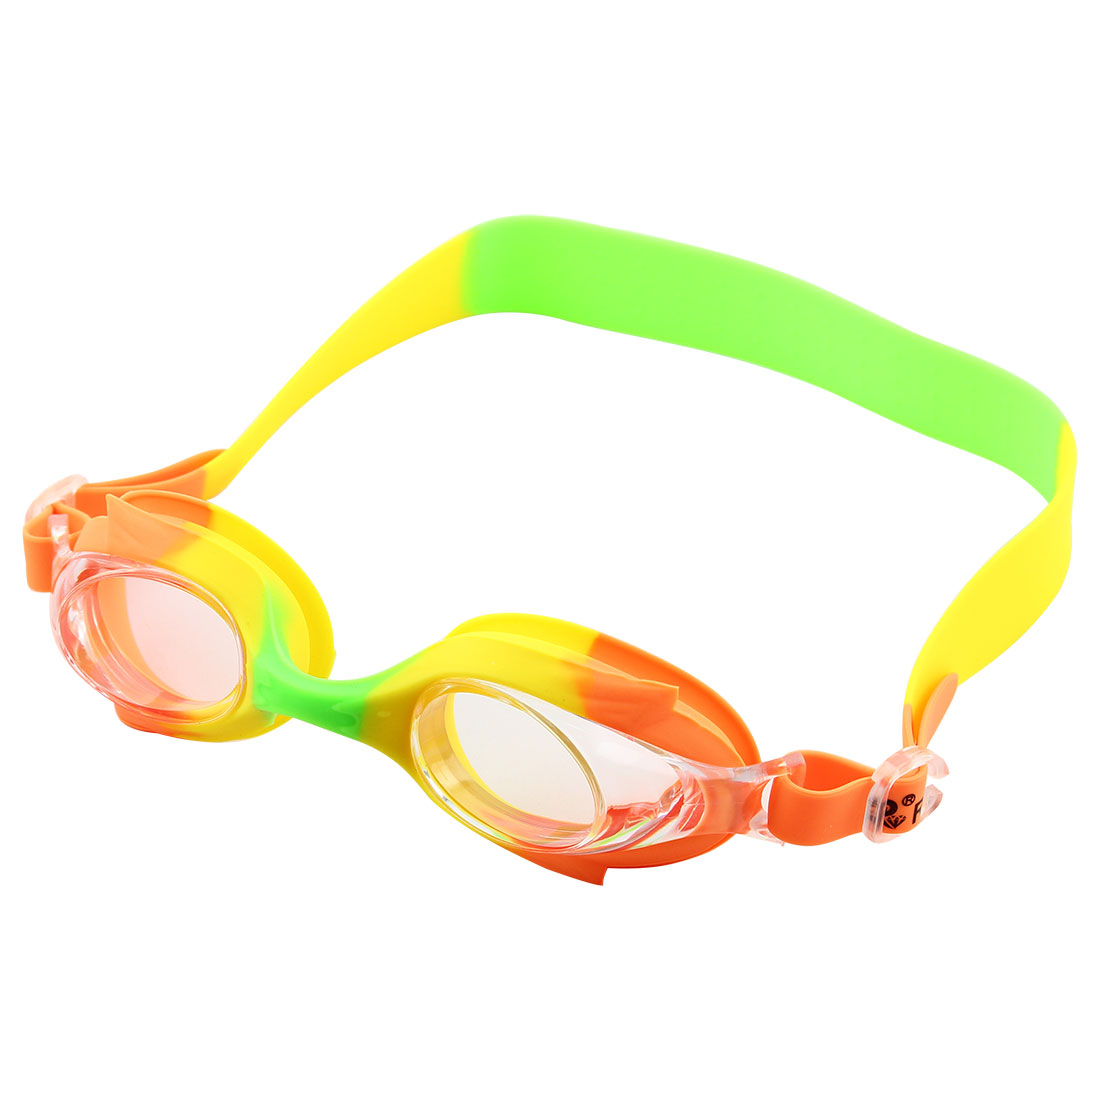 Silicone Adjustable Belt Clear Vision Anti Fog Swim Glasses Swimming Goggles Orange Yellow Green w Storage Case for Youth Boys Girls